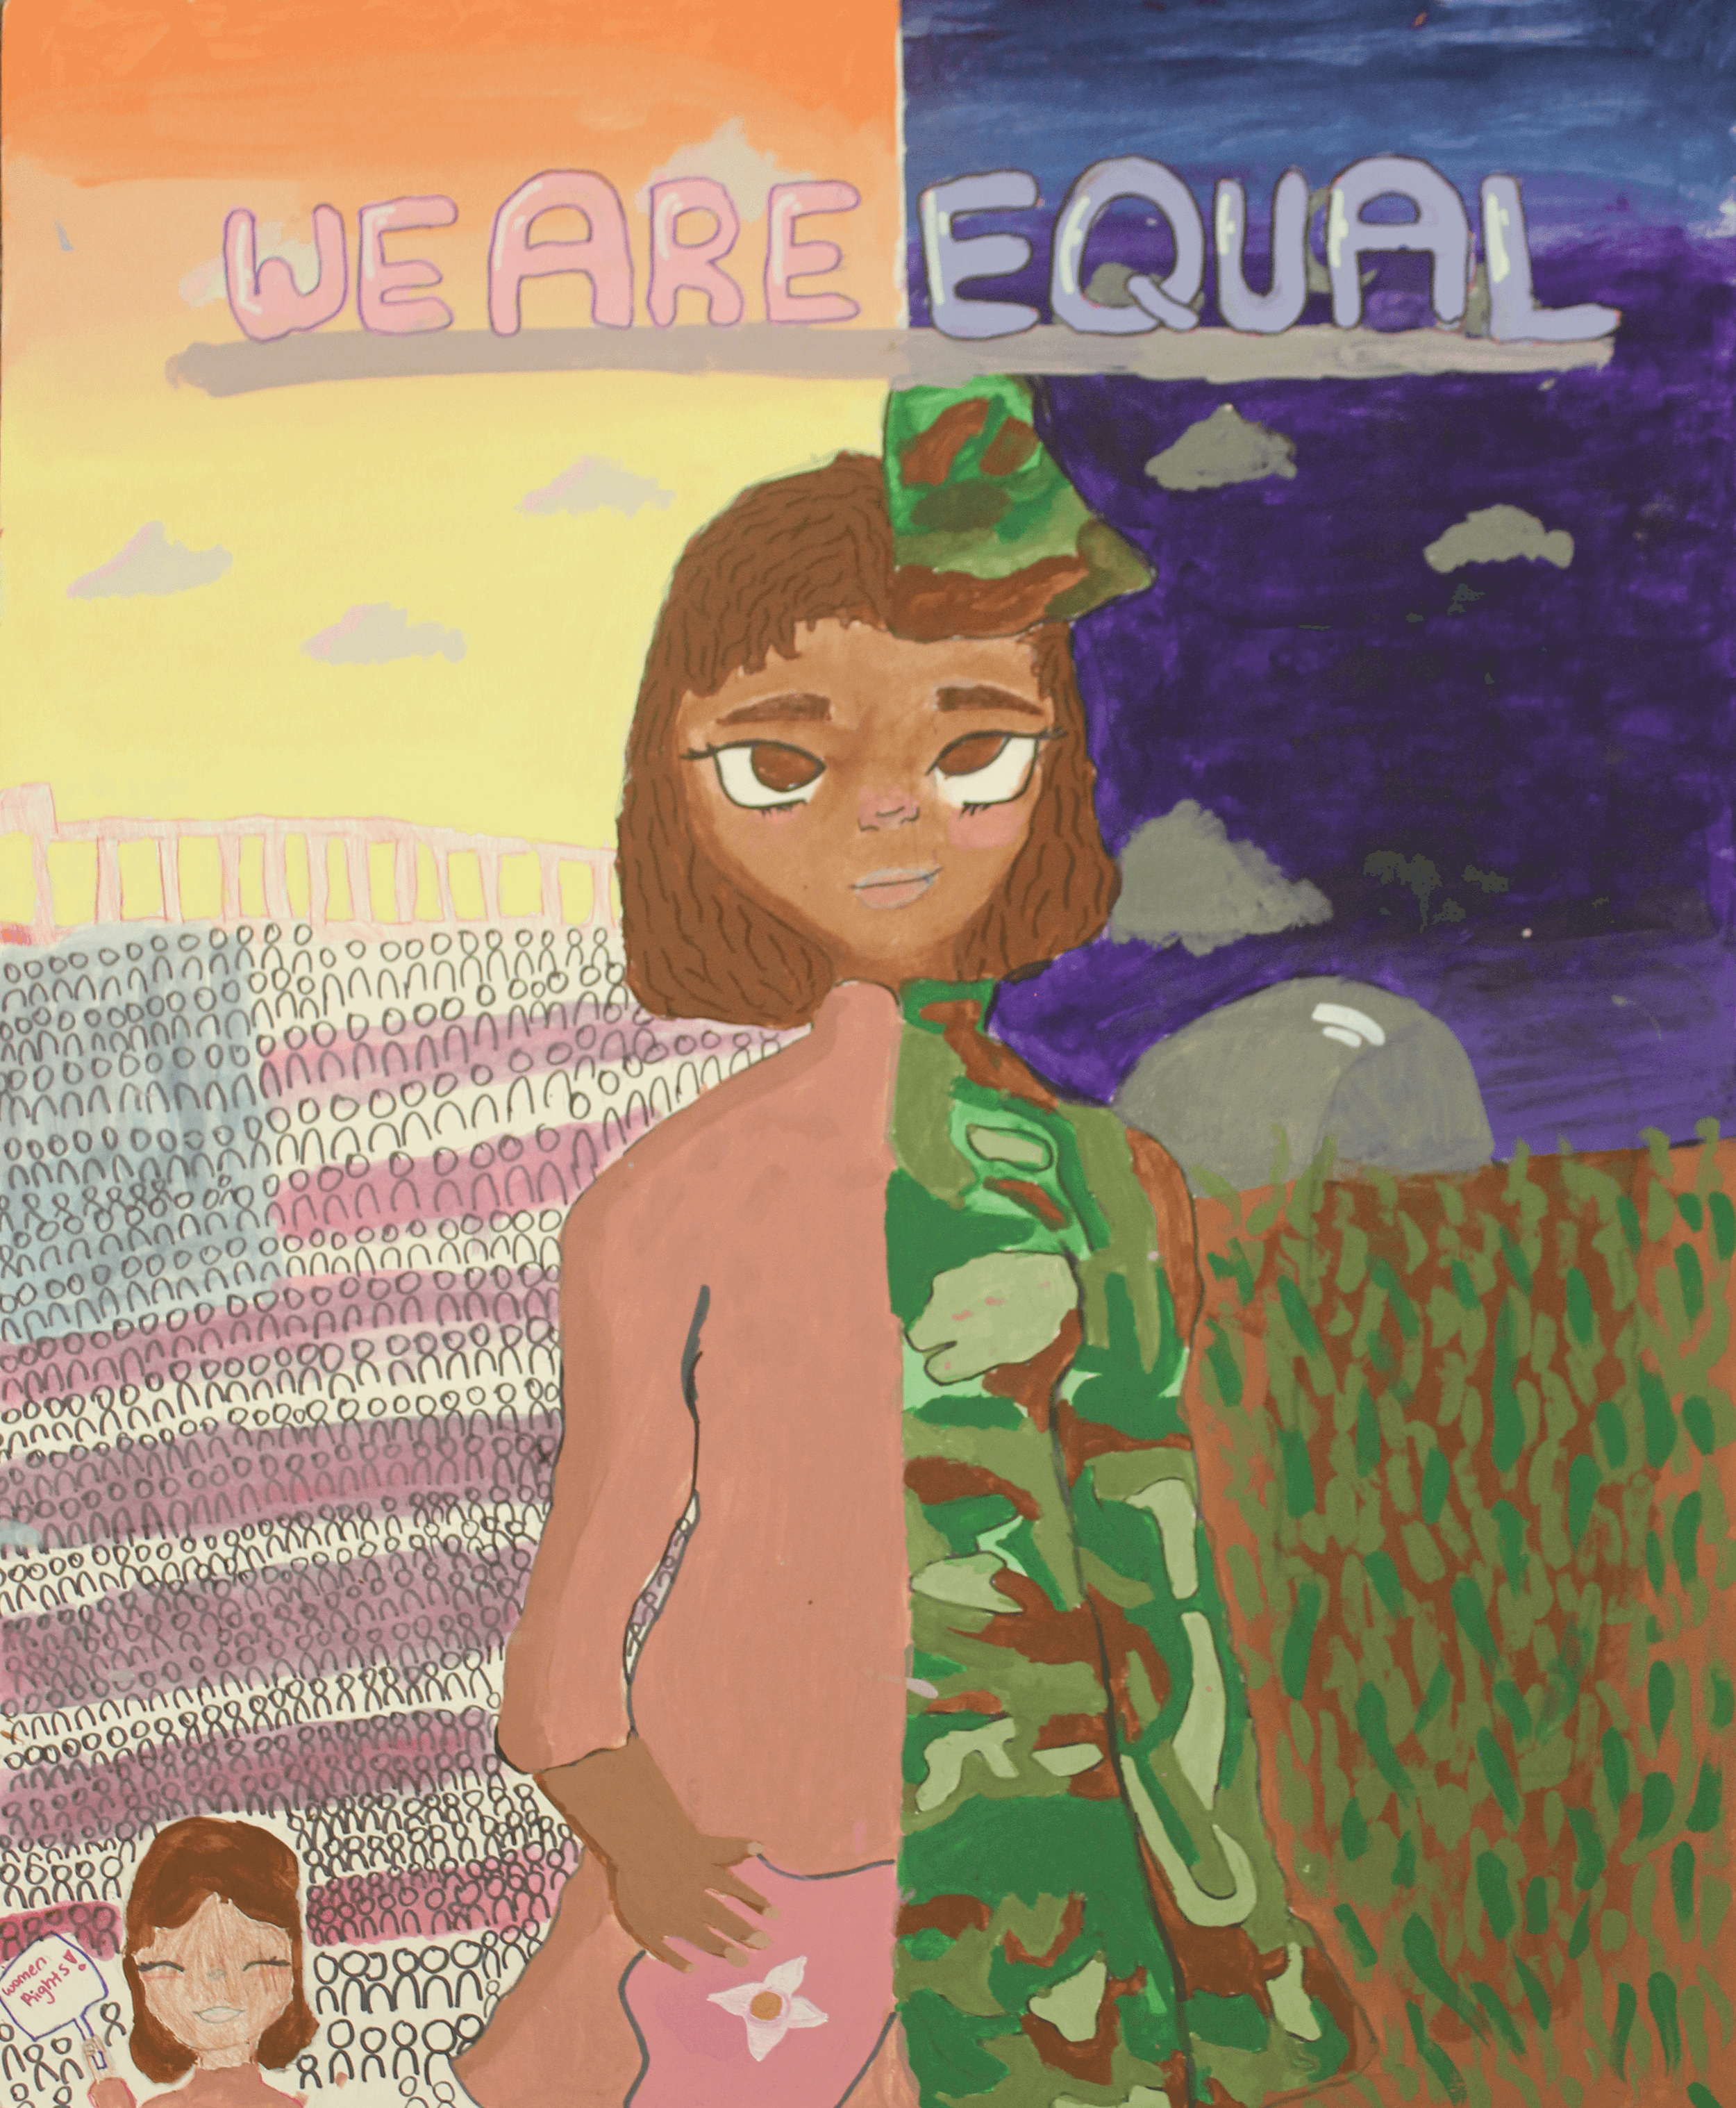 A young woman stands wearing a dress on one side and army fatigues on the other under the phrase we are equal